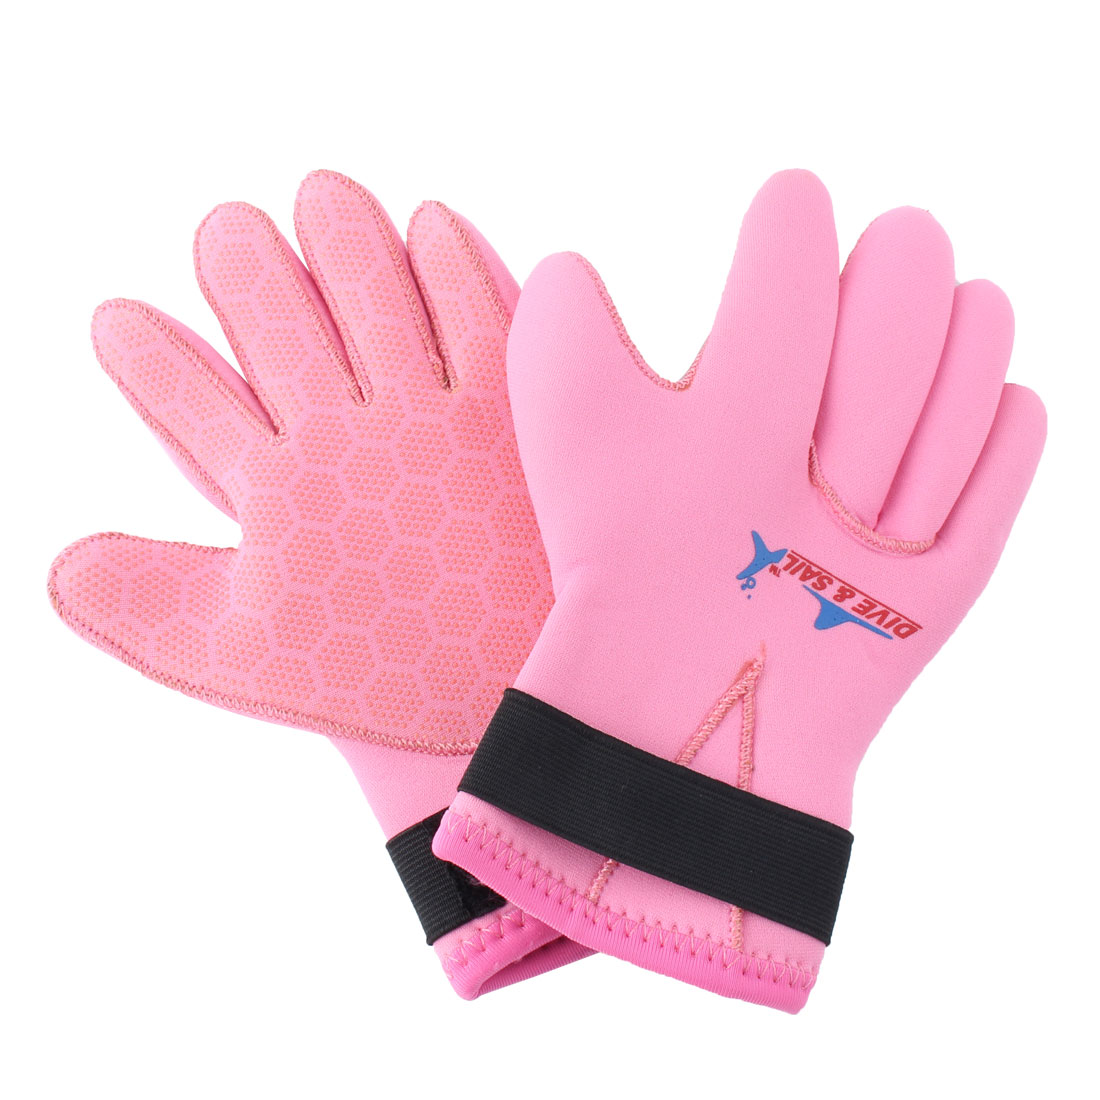 DIVE&SAIL Authorized Snorkeling Surfing Spearfishing Water Sports Warm Diving Gloves Pink Size XL Pair for Child Youth